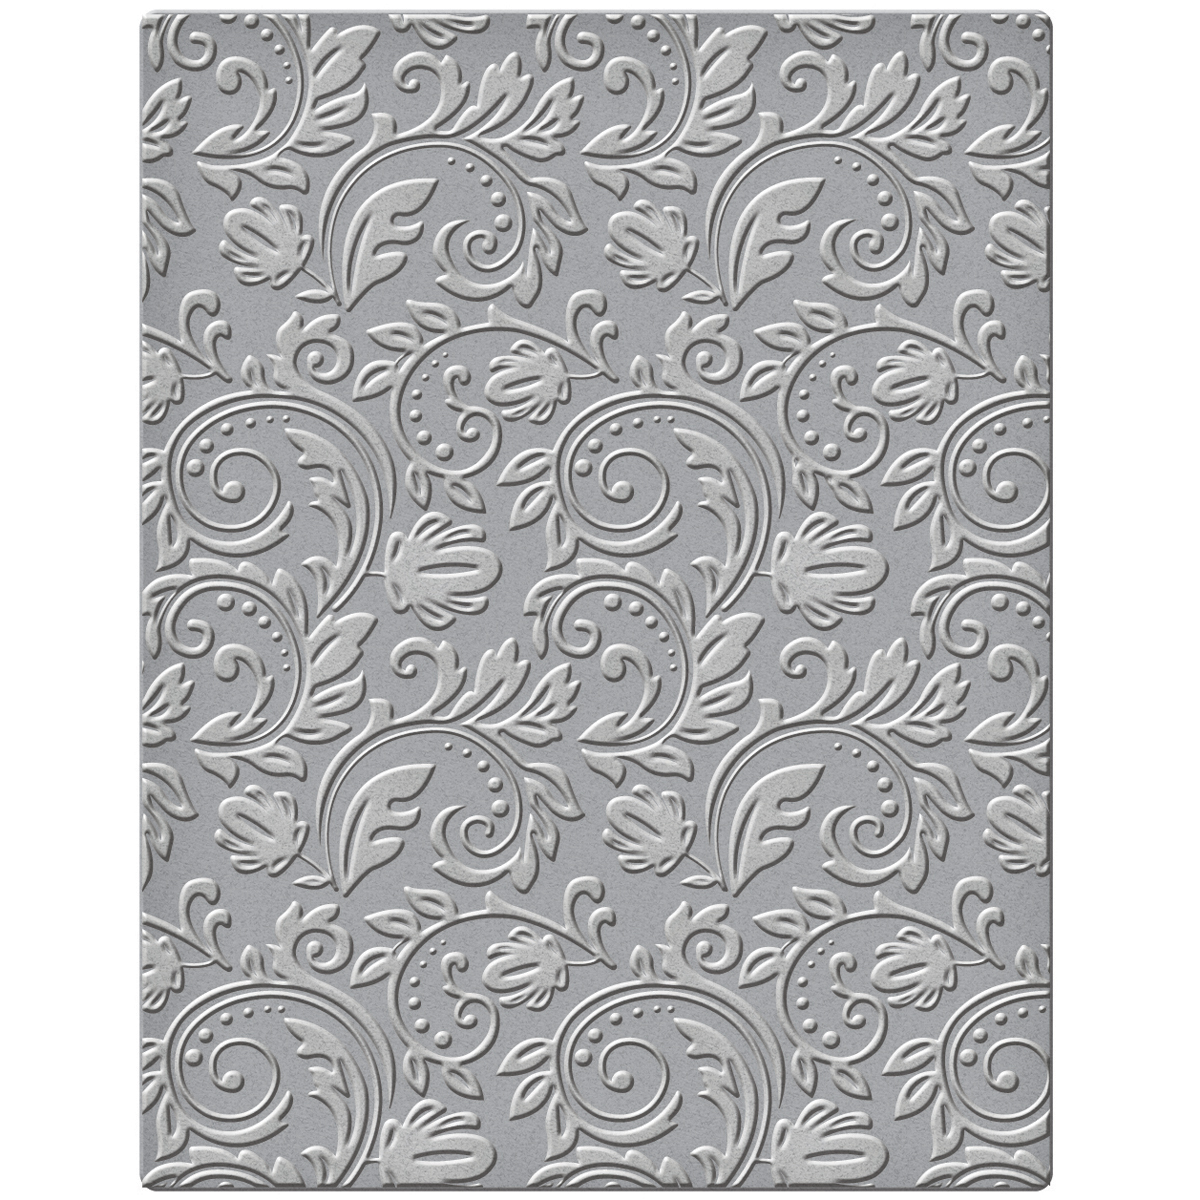 Spellbinders Embossing Folder Small-floral